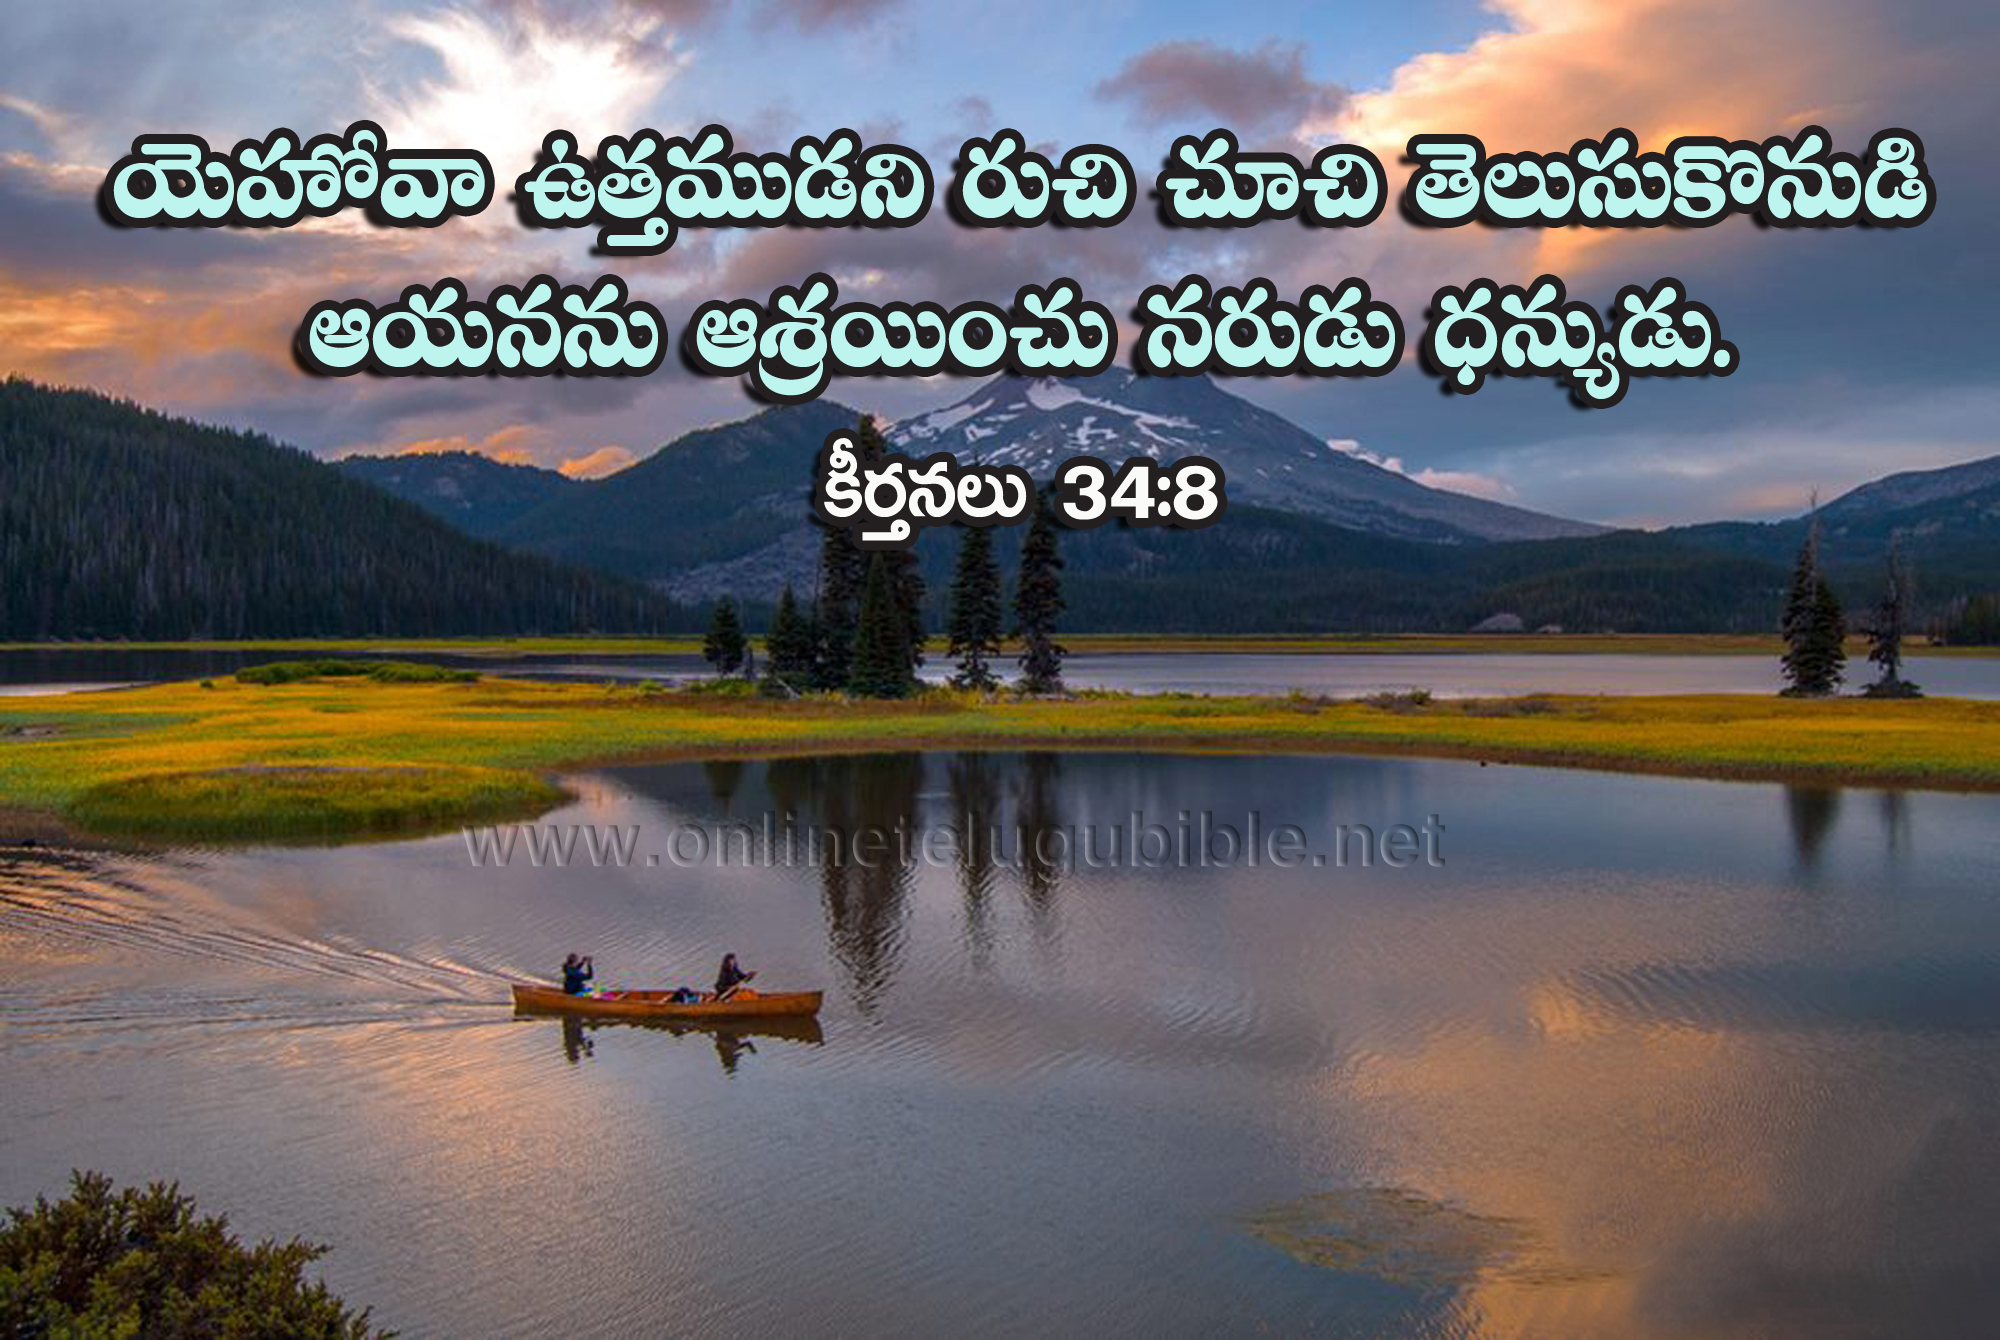 Love Wallpapers Quotes In Telugu Download Telugu Bible Words Wallpapers Gallery